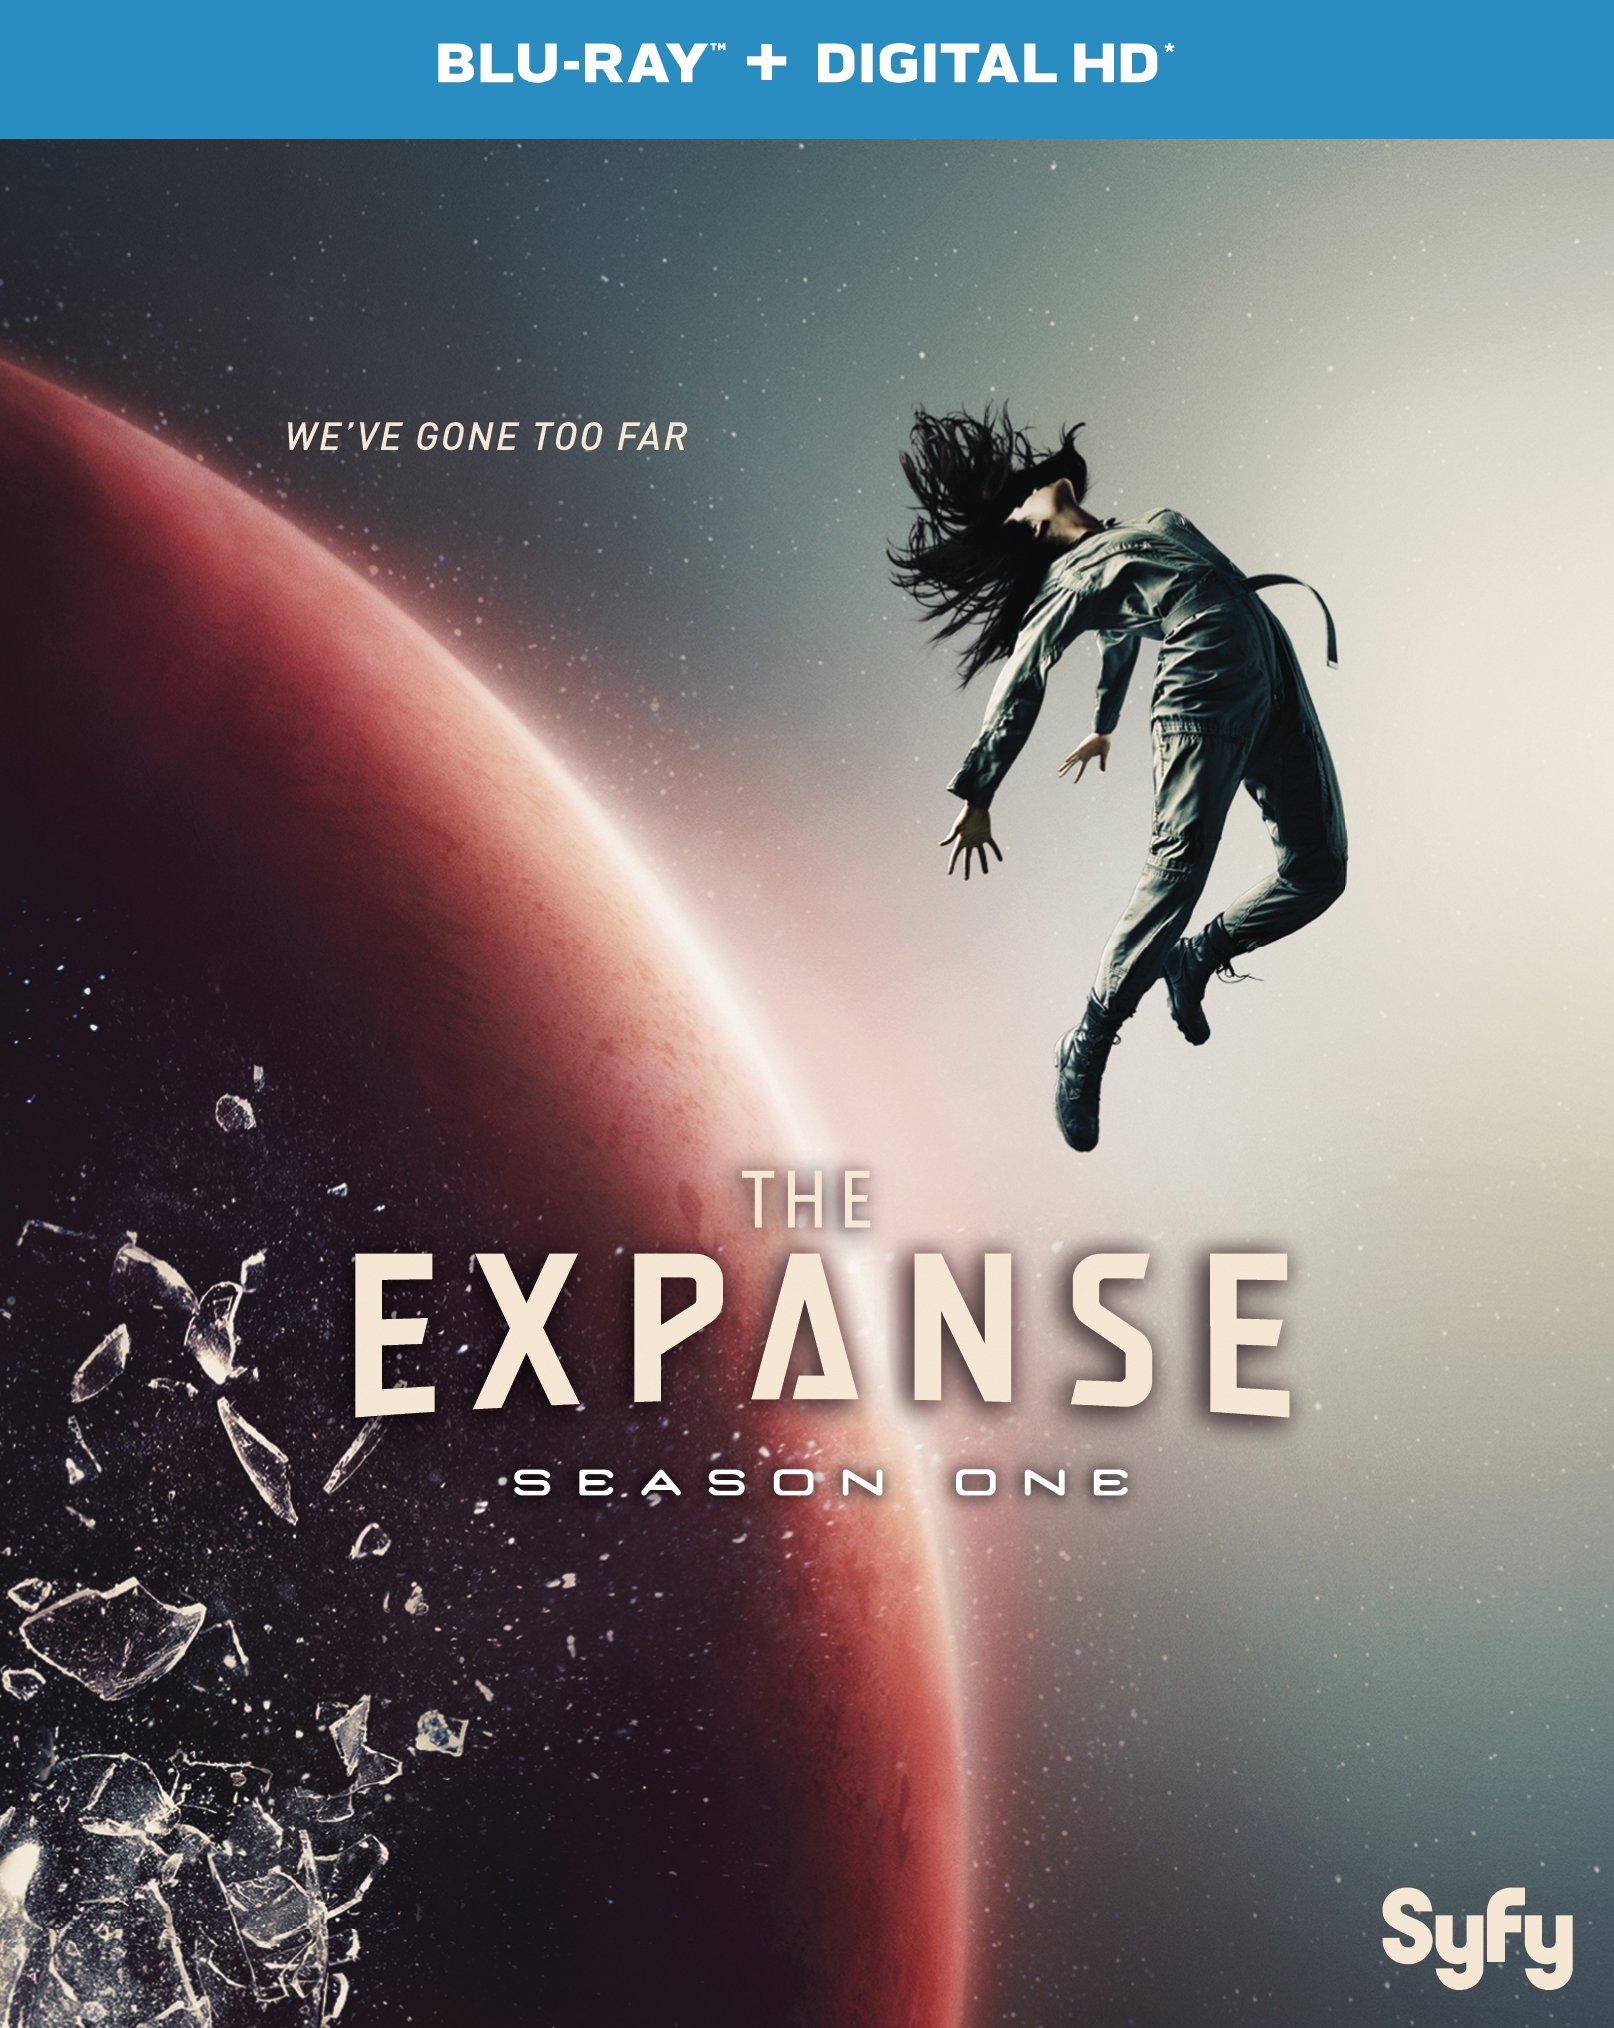 Blu-ray : The Expanse: Season One (Ultraviolet Digital Copy, Snap Case, Slipsleeve Packaging, 2 Pack, Digitally Mastered in HD)